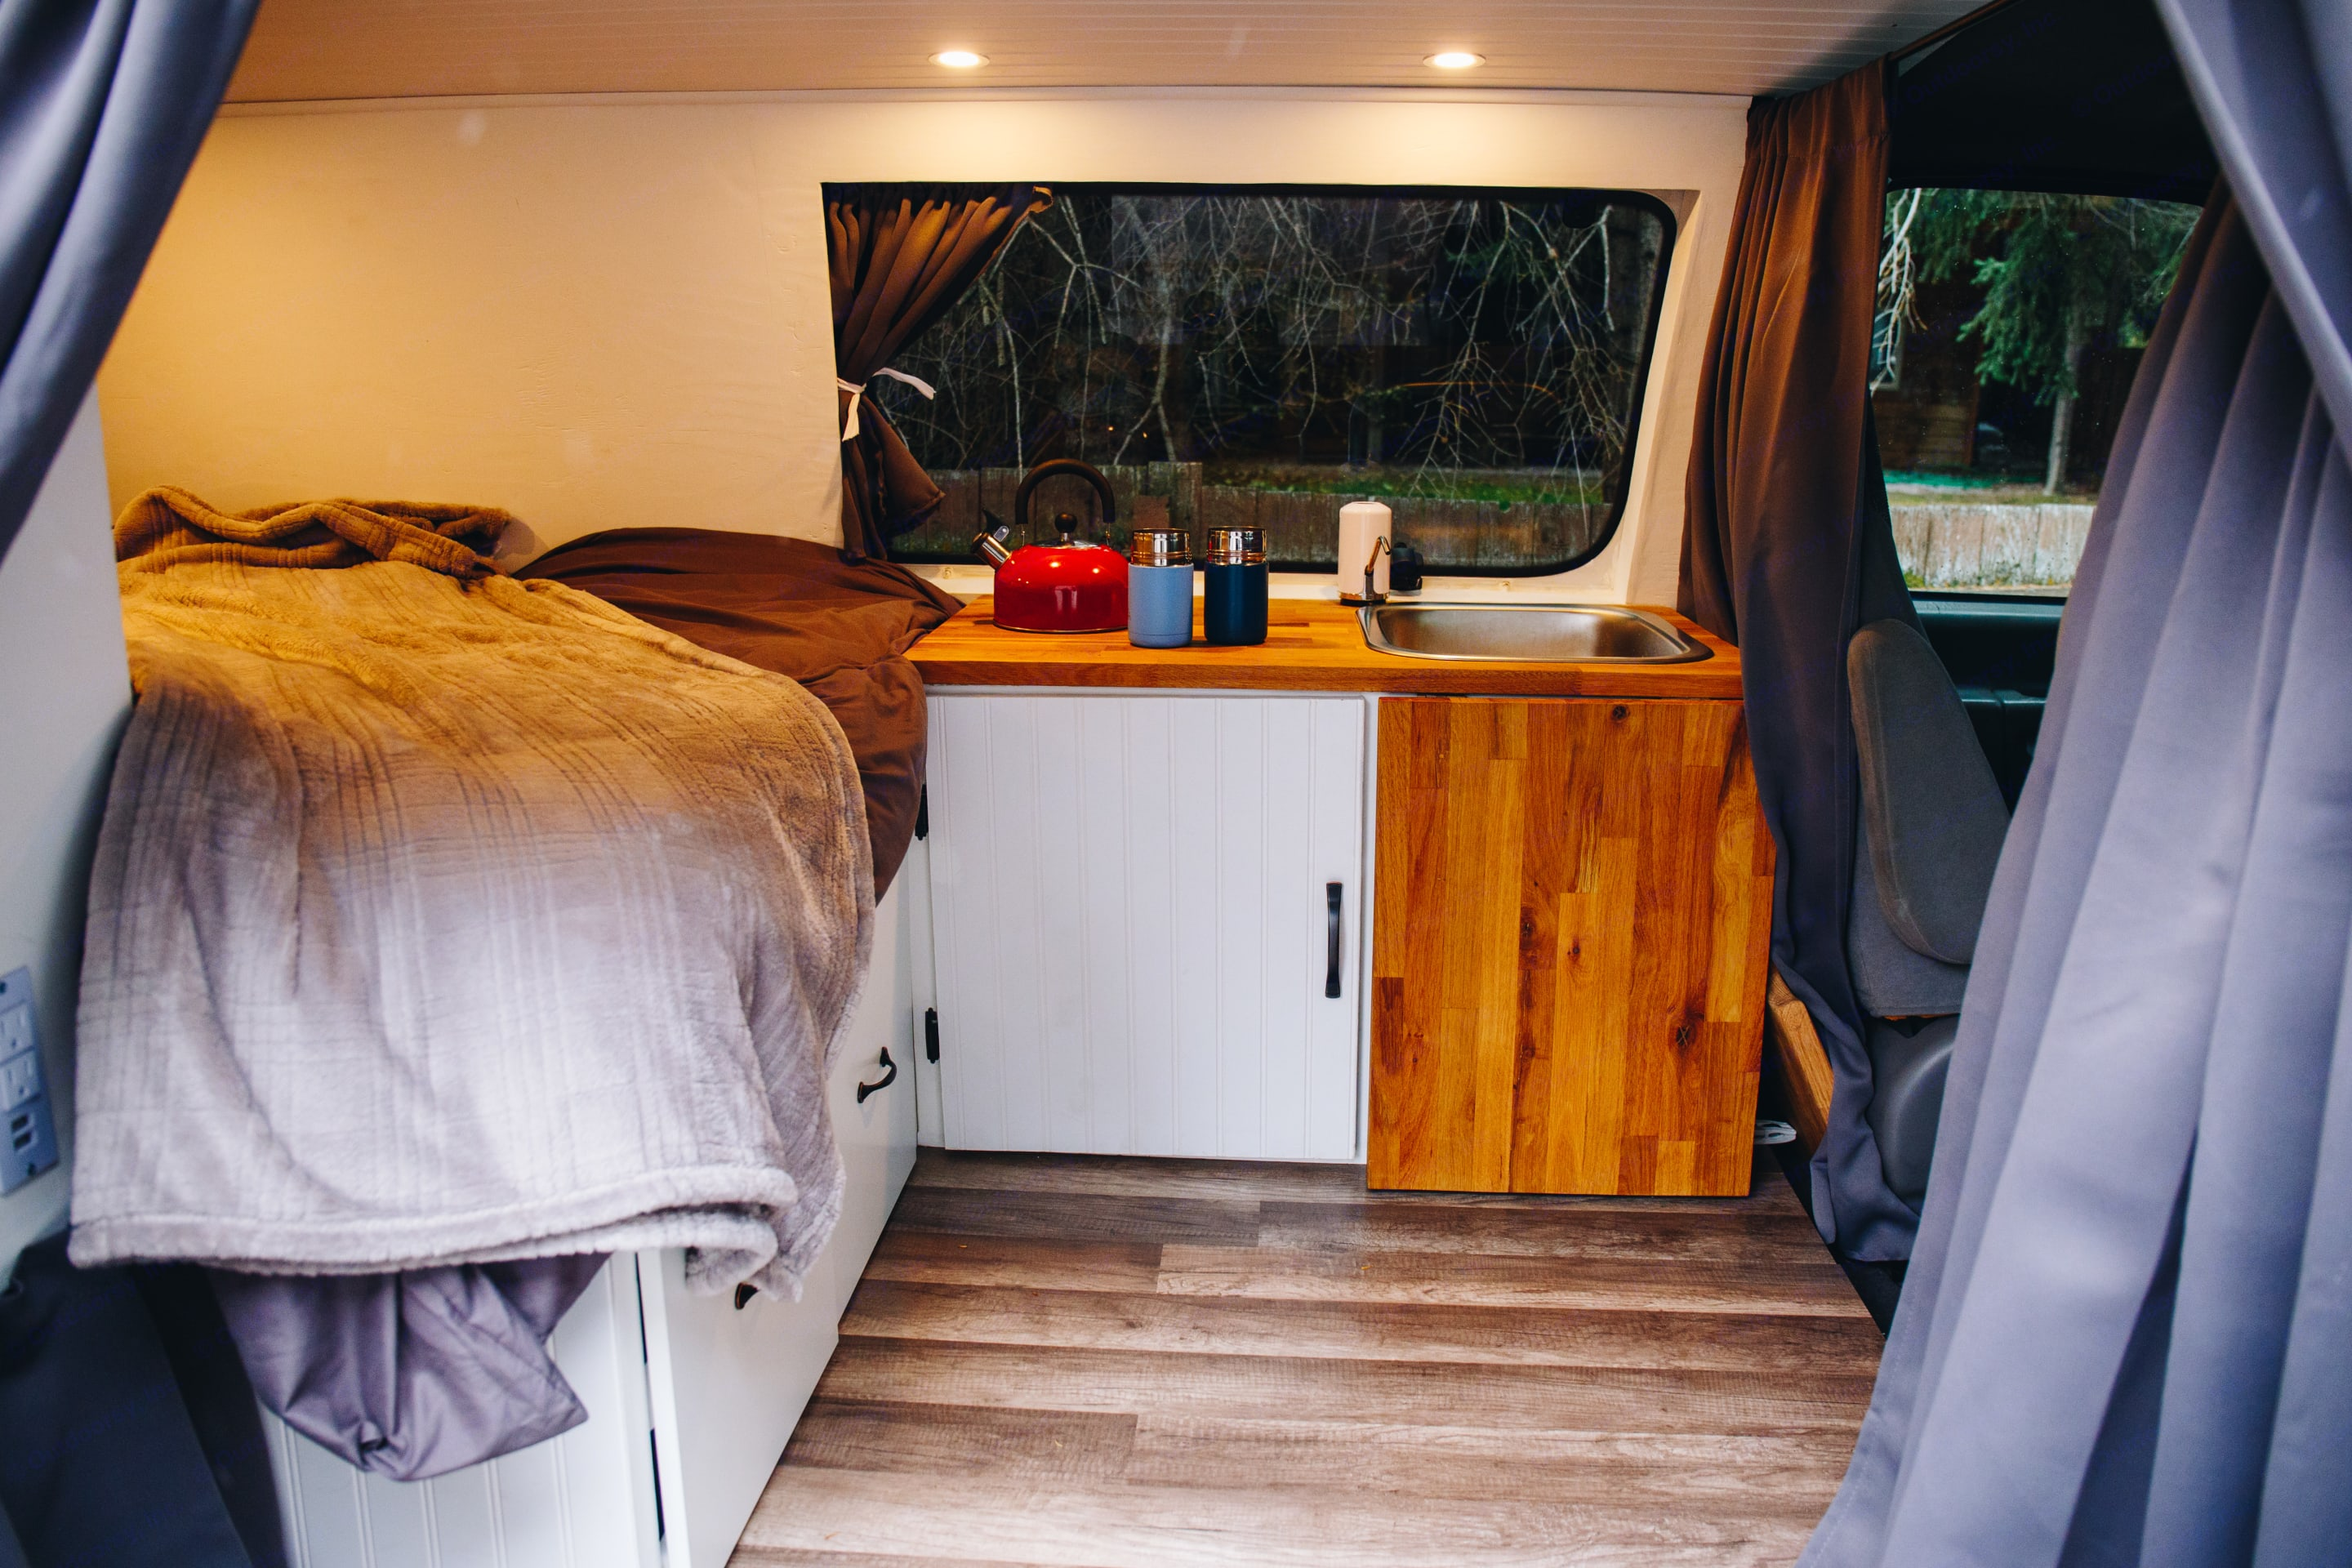 Front of interior of the van showing the kitchen area. Ford Econoline 150 2000